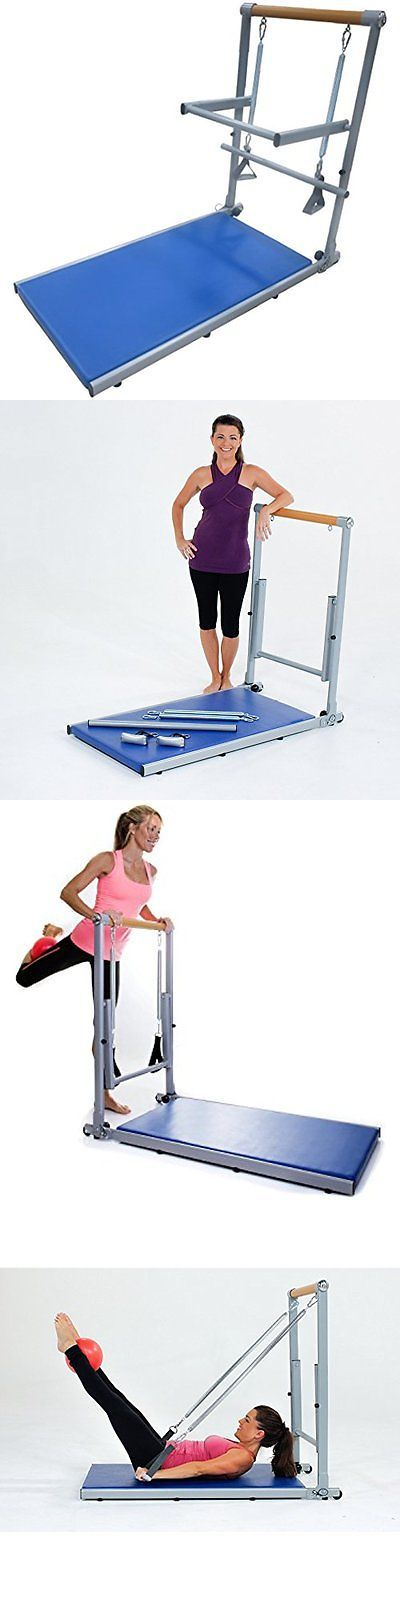 Pilates Tables 179807: Reformers Supreme Toning Tower W Pilates Barre -> BUY IT NOW ONLY: $319.52 on eBay!